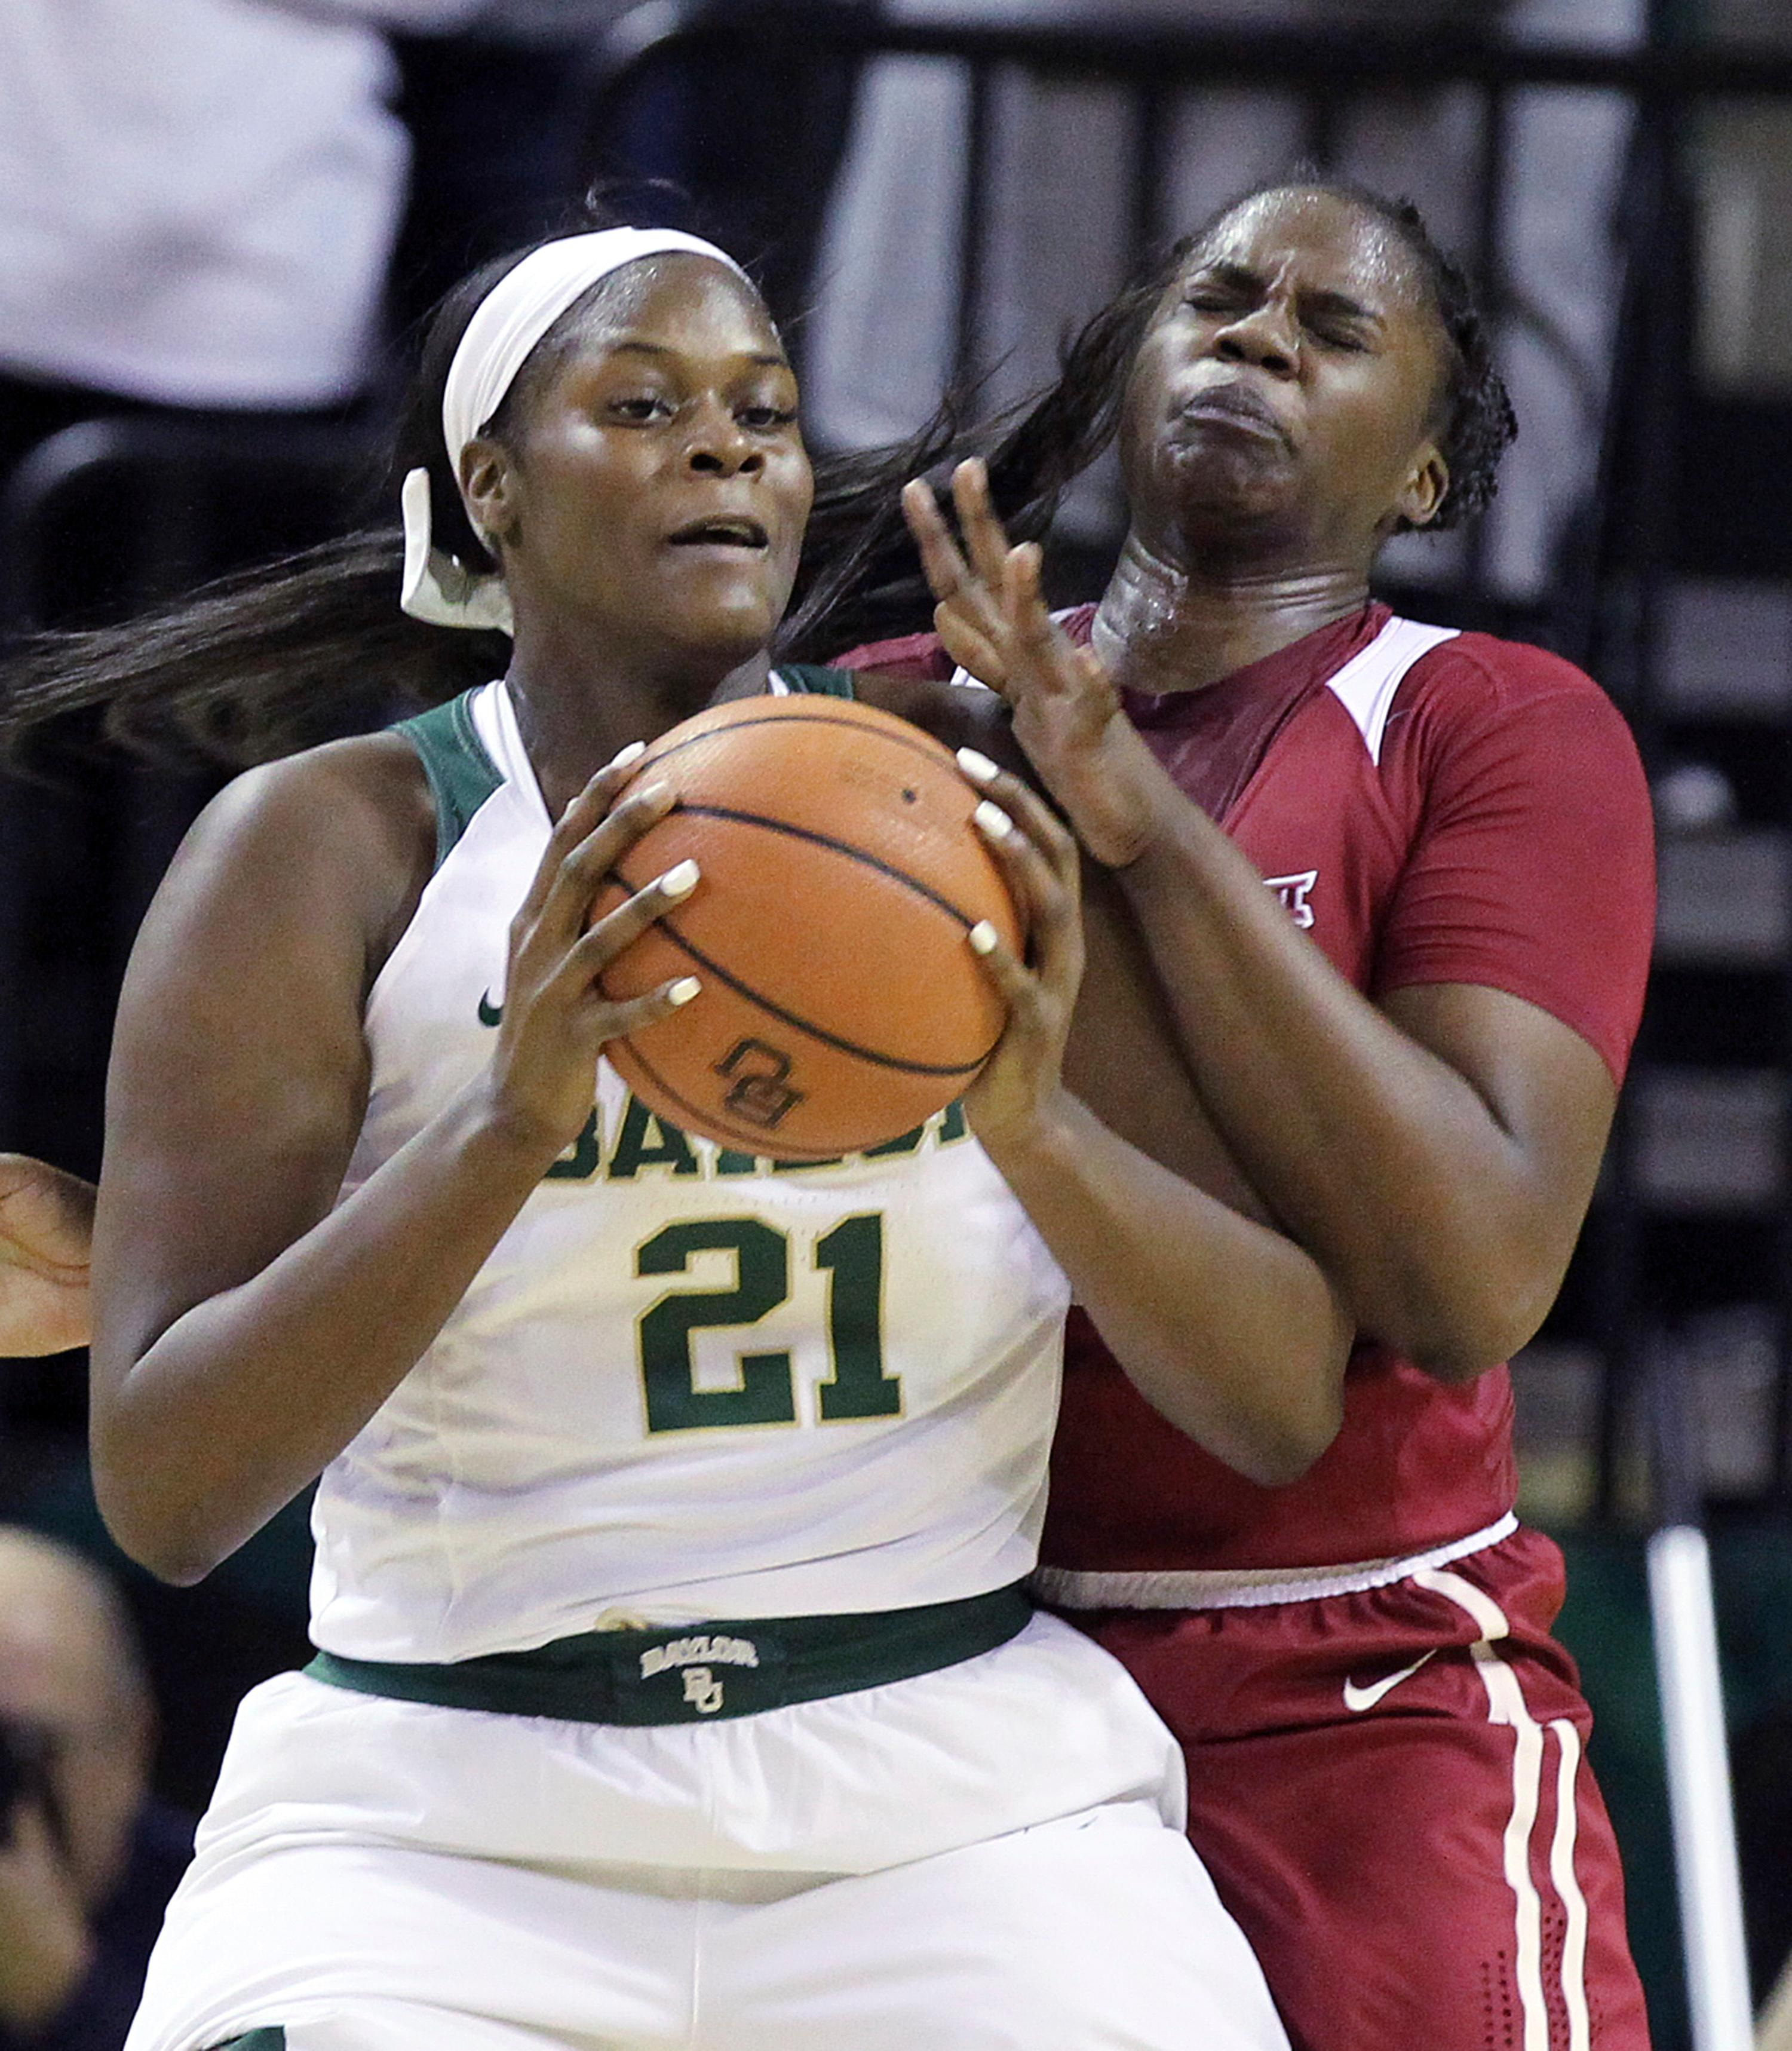 Baylor center Kalani Brown, left, tries to score past Oklahoma center Vionise Pierre-Louis, right, during the first half of an NCAA college basketball game, Monday, Feb. 5, 2018, in Waco, Texas. (AP Photo/Jerry Larson)